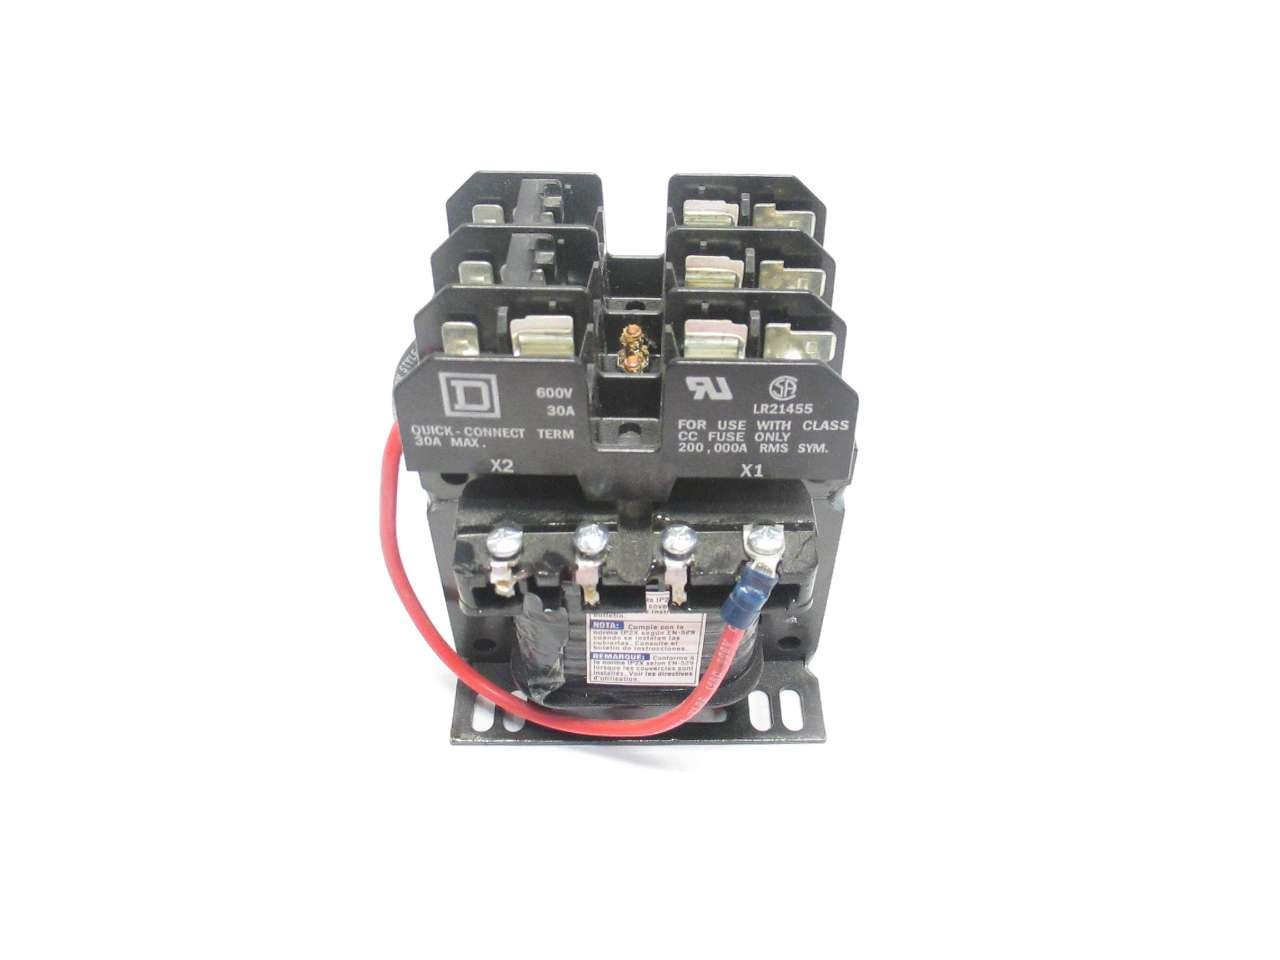 NEW SQUARE D 9070TF100D1 480V-AC 120V-AC 100VA TRANSFORMER D503552